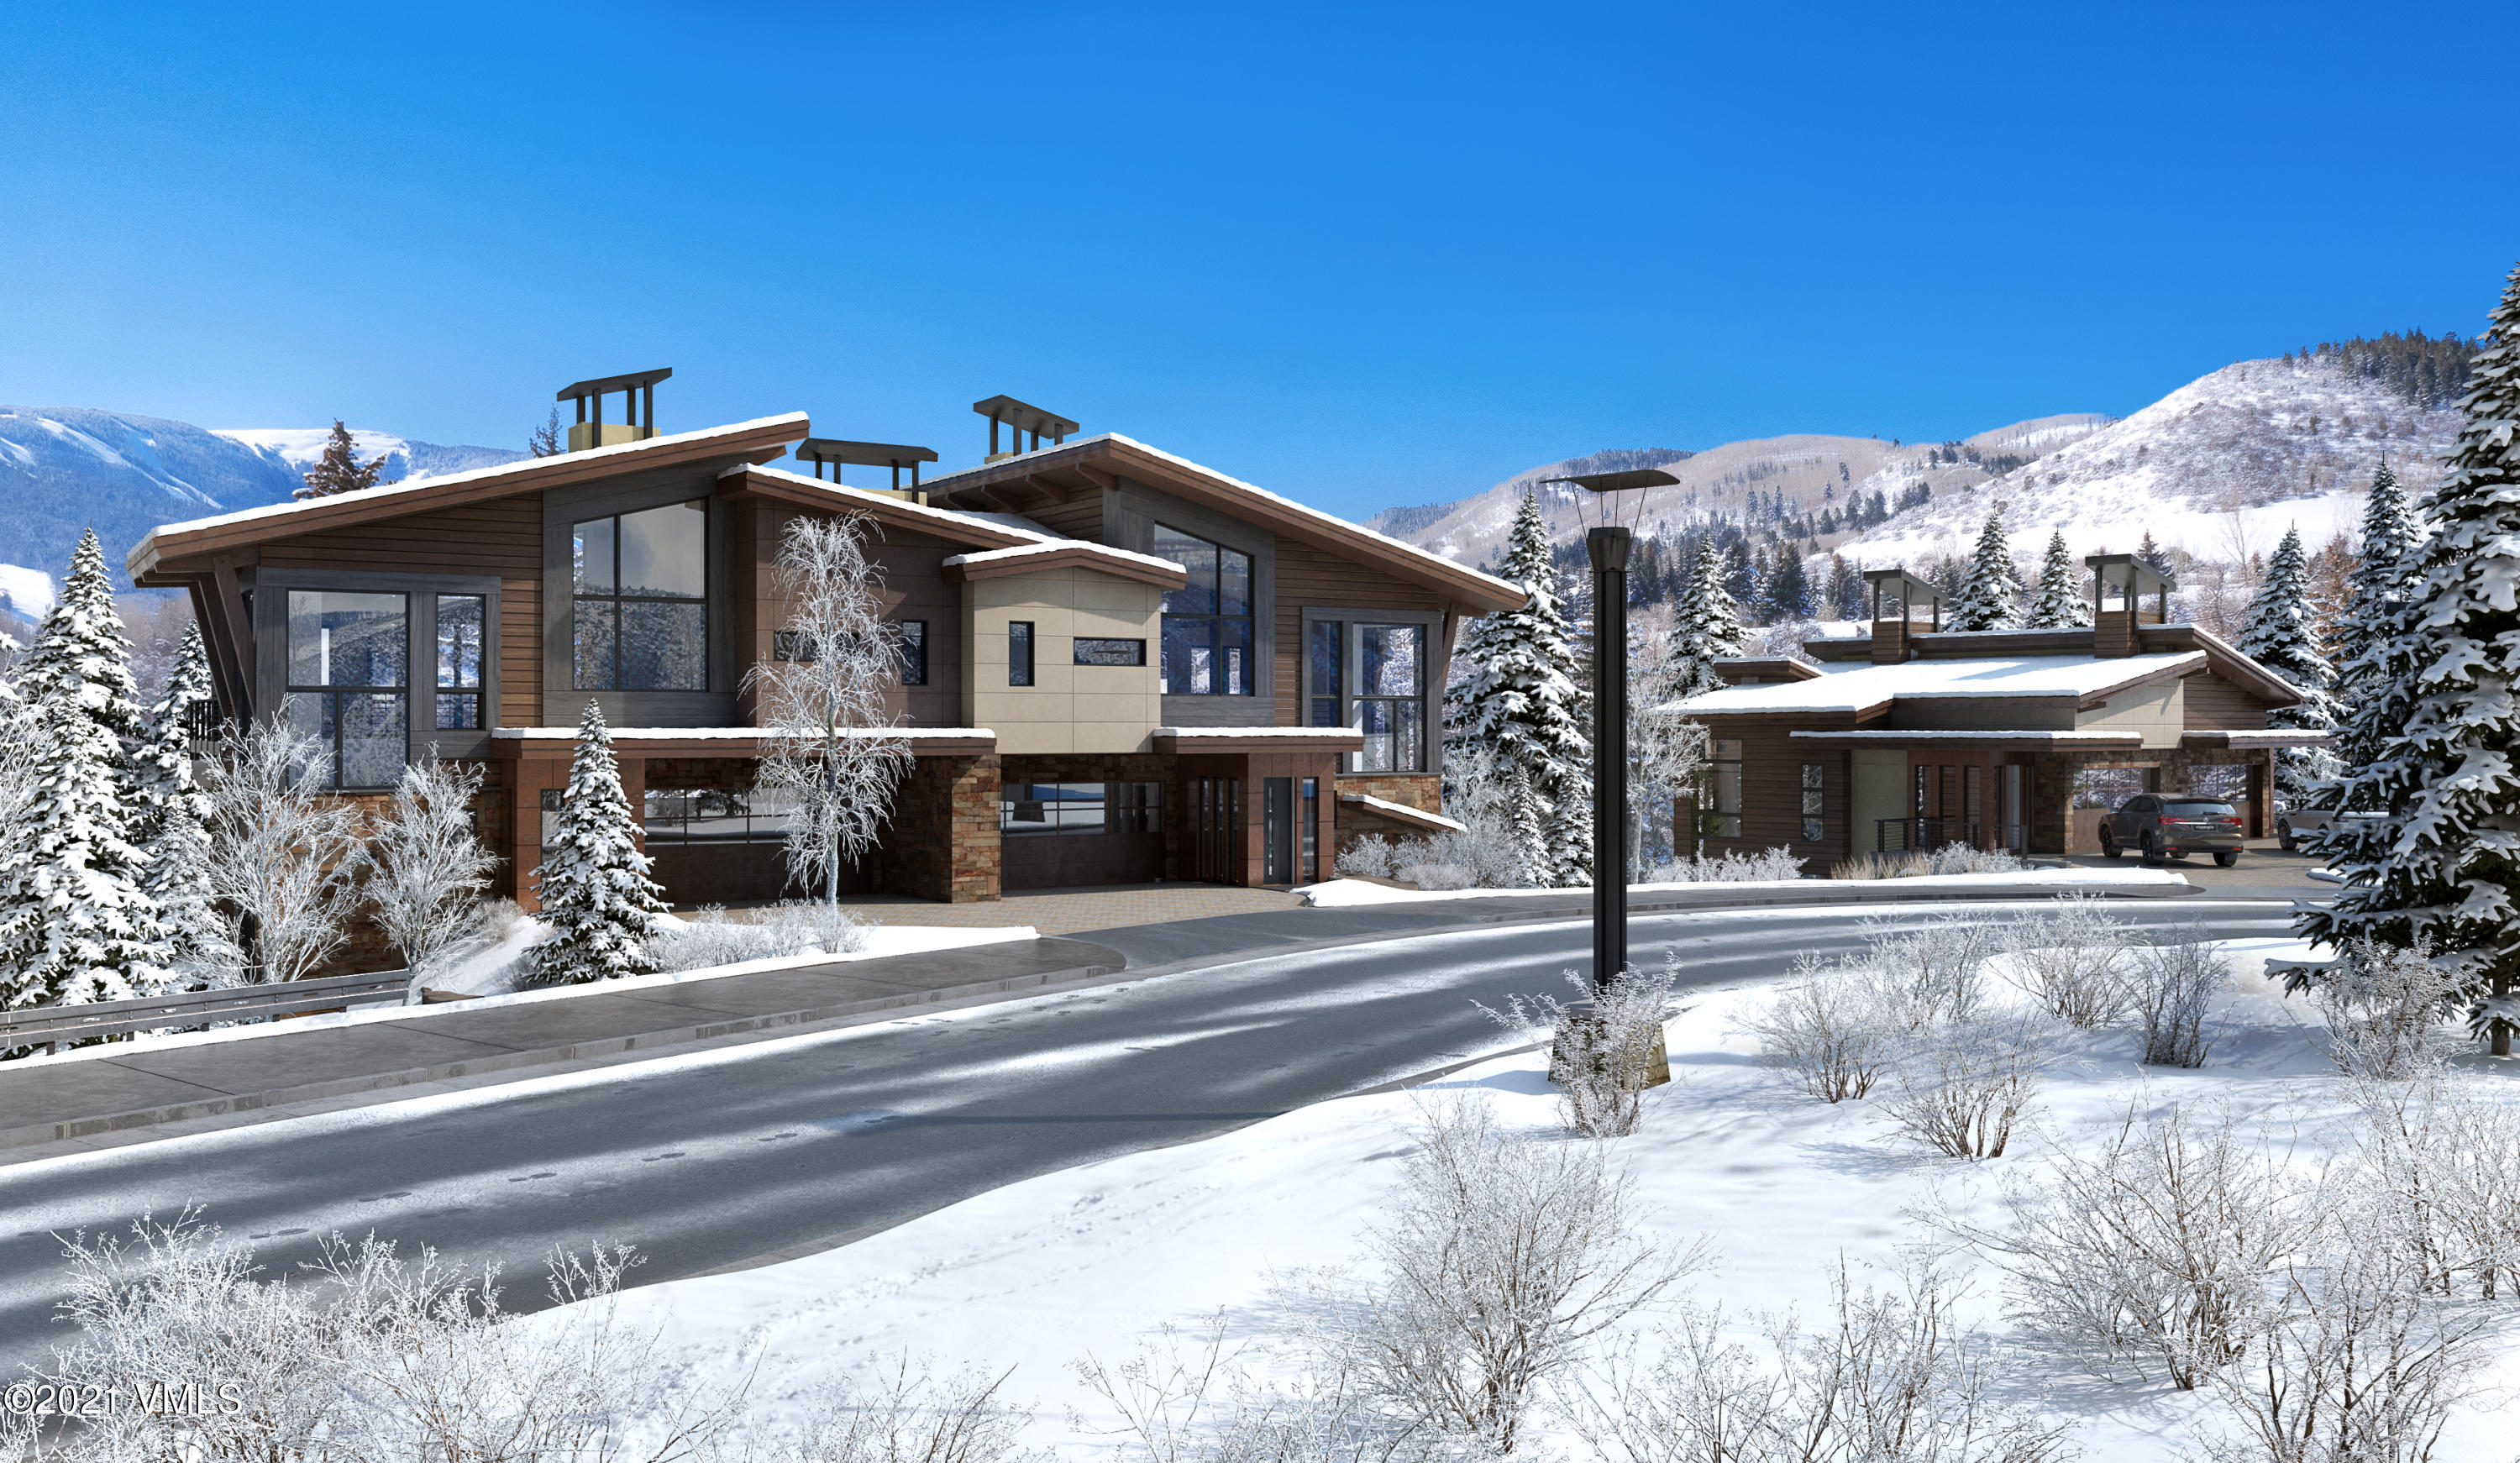 The last and final Residence at Riverfront and now offered fully furnished. Luxurious 4-bedroom, 3-bathroom in an unparalleled location west of the Westin, perched on the Eagle River in the brand-new Riverfront Village. Enjoy an ultimate indoor-to-outdoor experience in this very open-concept plan featuring 9-foot glass accordion-style walls that fully open and an expansive deck, allowing for panoramic views down the river and up to mountain peaks. Designed for the future of luxury mountain living, the floor plans offer a second living room, solar panels, a cutting-edge air filtration system, along with lockable owner storage and a coveted 2-car garage. Enjoy the perks of the world class amenities at the Westin while still being able to retreat to the privacy and seclusion of your own quiet enclave of only 4 residences. Interiors are sleek and sophisticated featuring oak slab cabinets, wide-plank hardwood floors, quartz countertops, Waterworks fixtures, Thermador appliances and natural textures and contrasts.